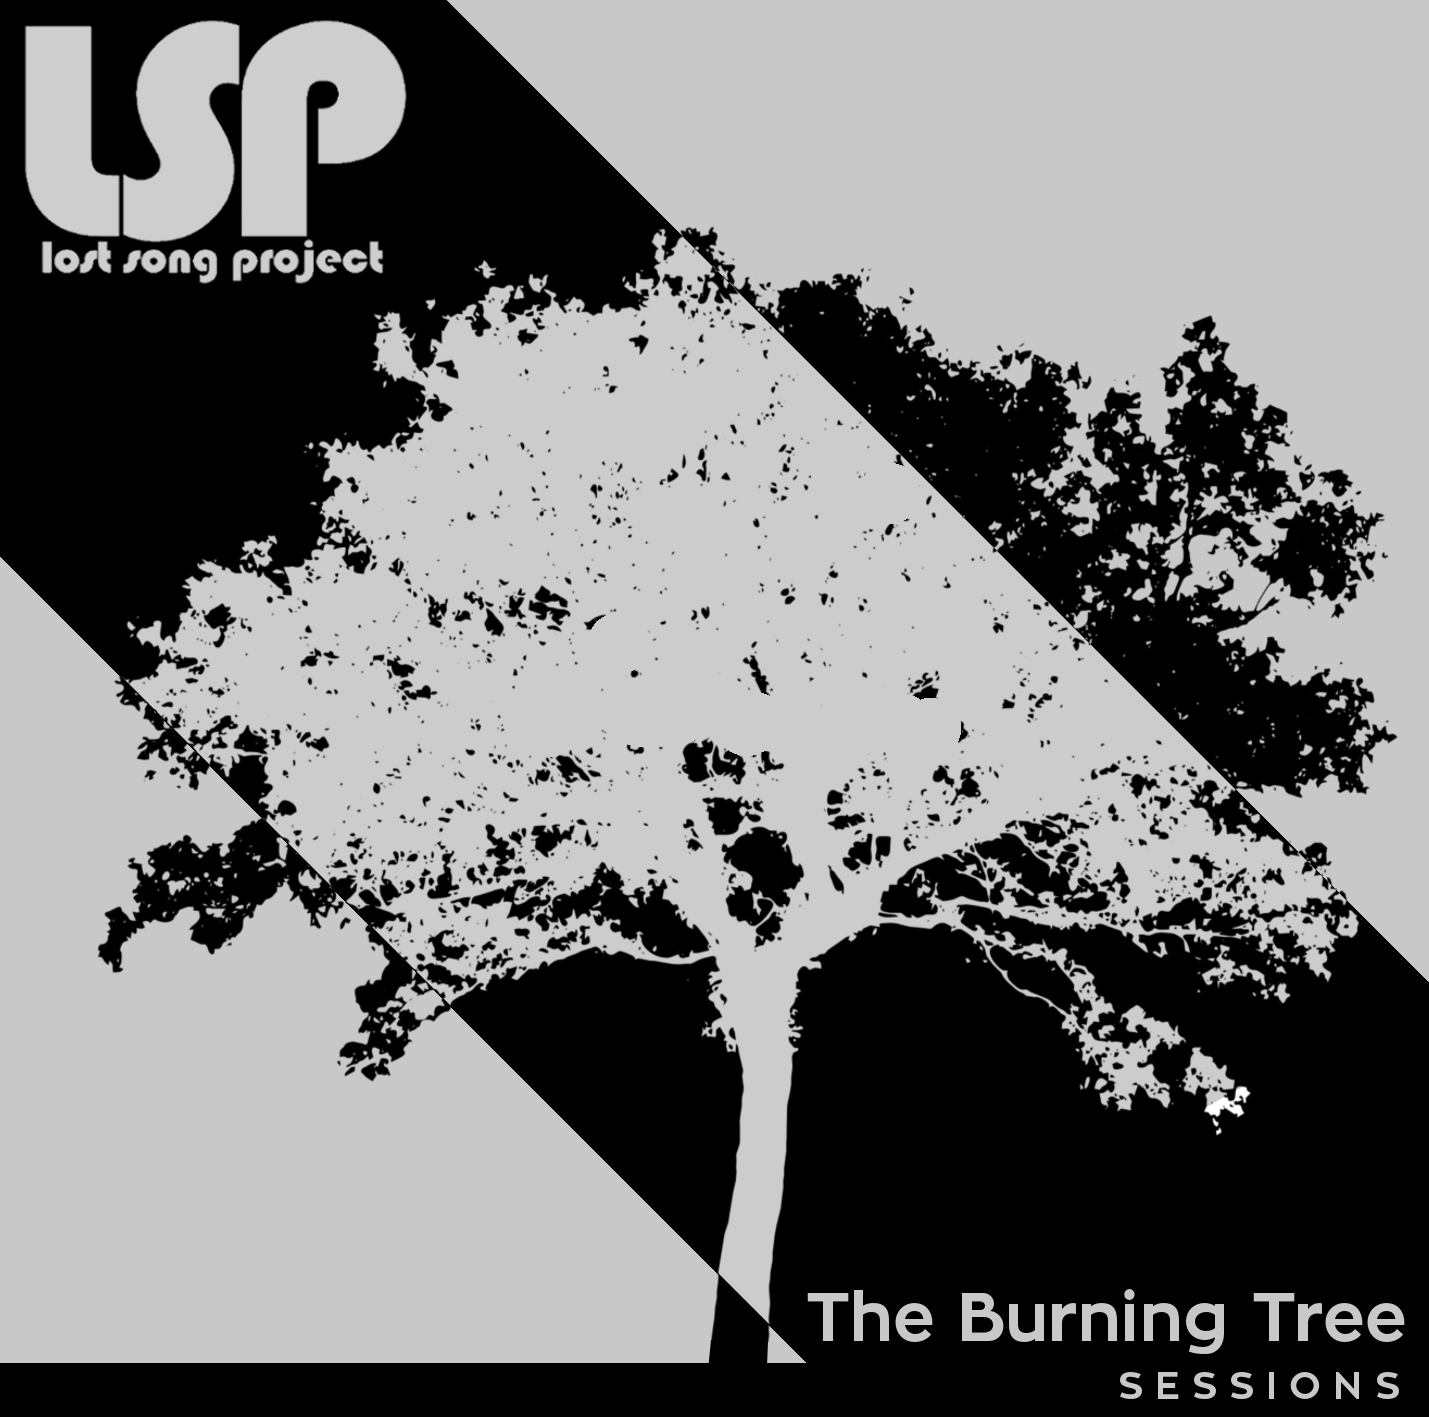 burning tree ideaSESSIONS2